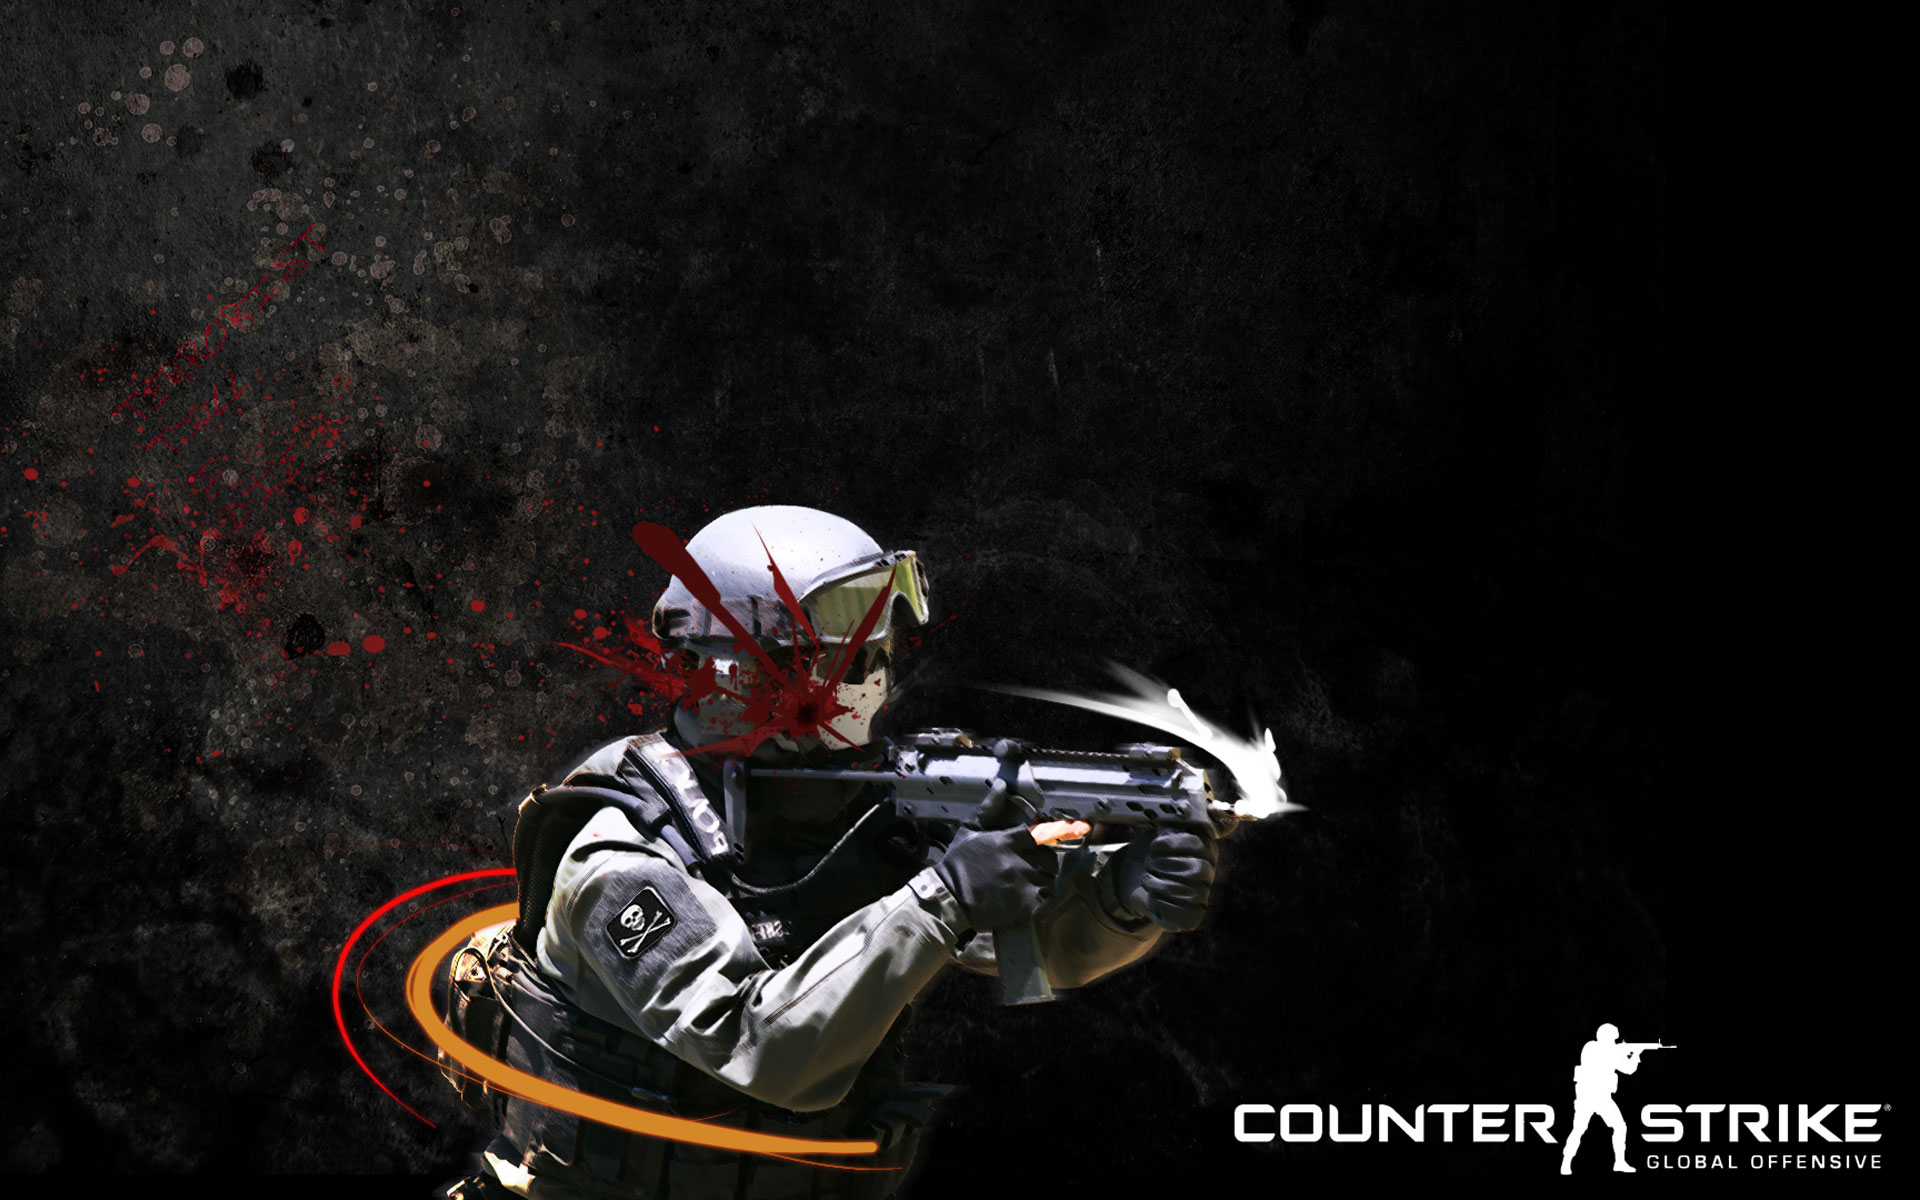 Cs Go Wallpaper Hd Wallpapersafari